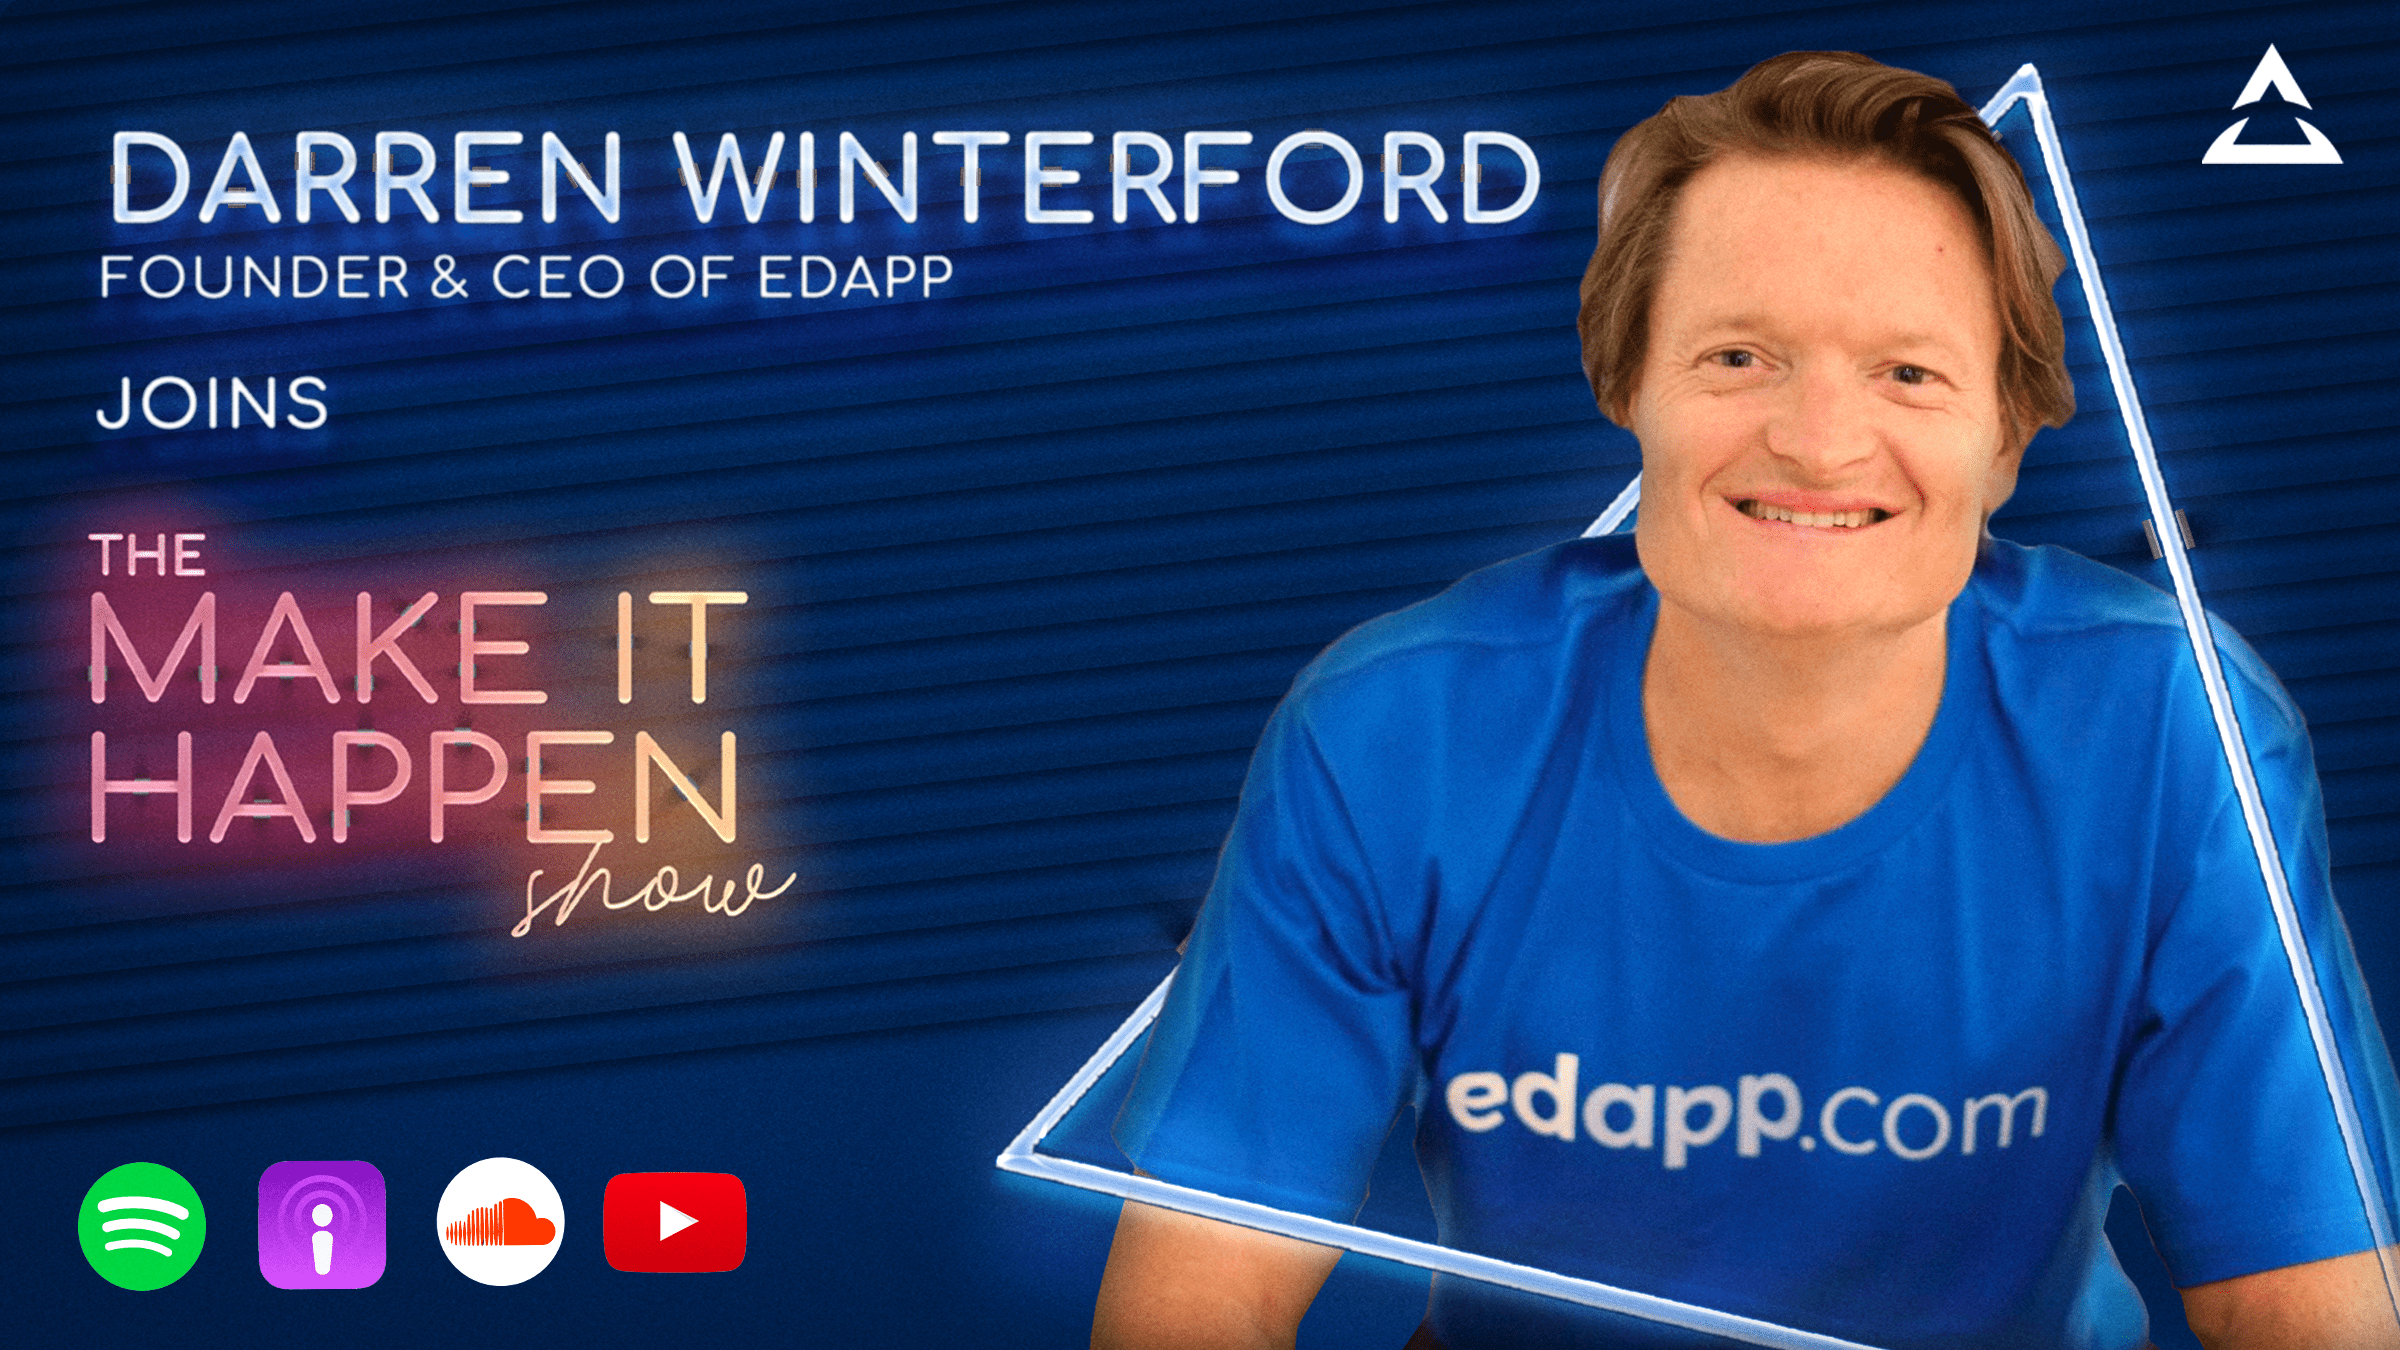 7. Darren Winterford promotional image for The Make It Happen Show